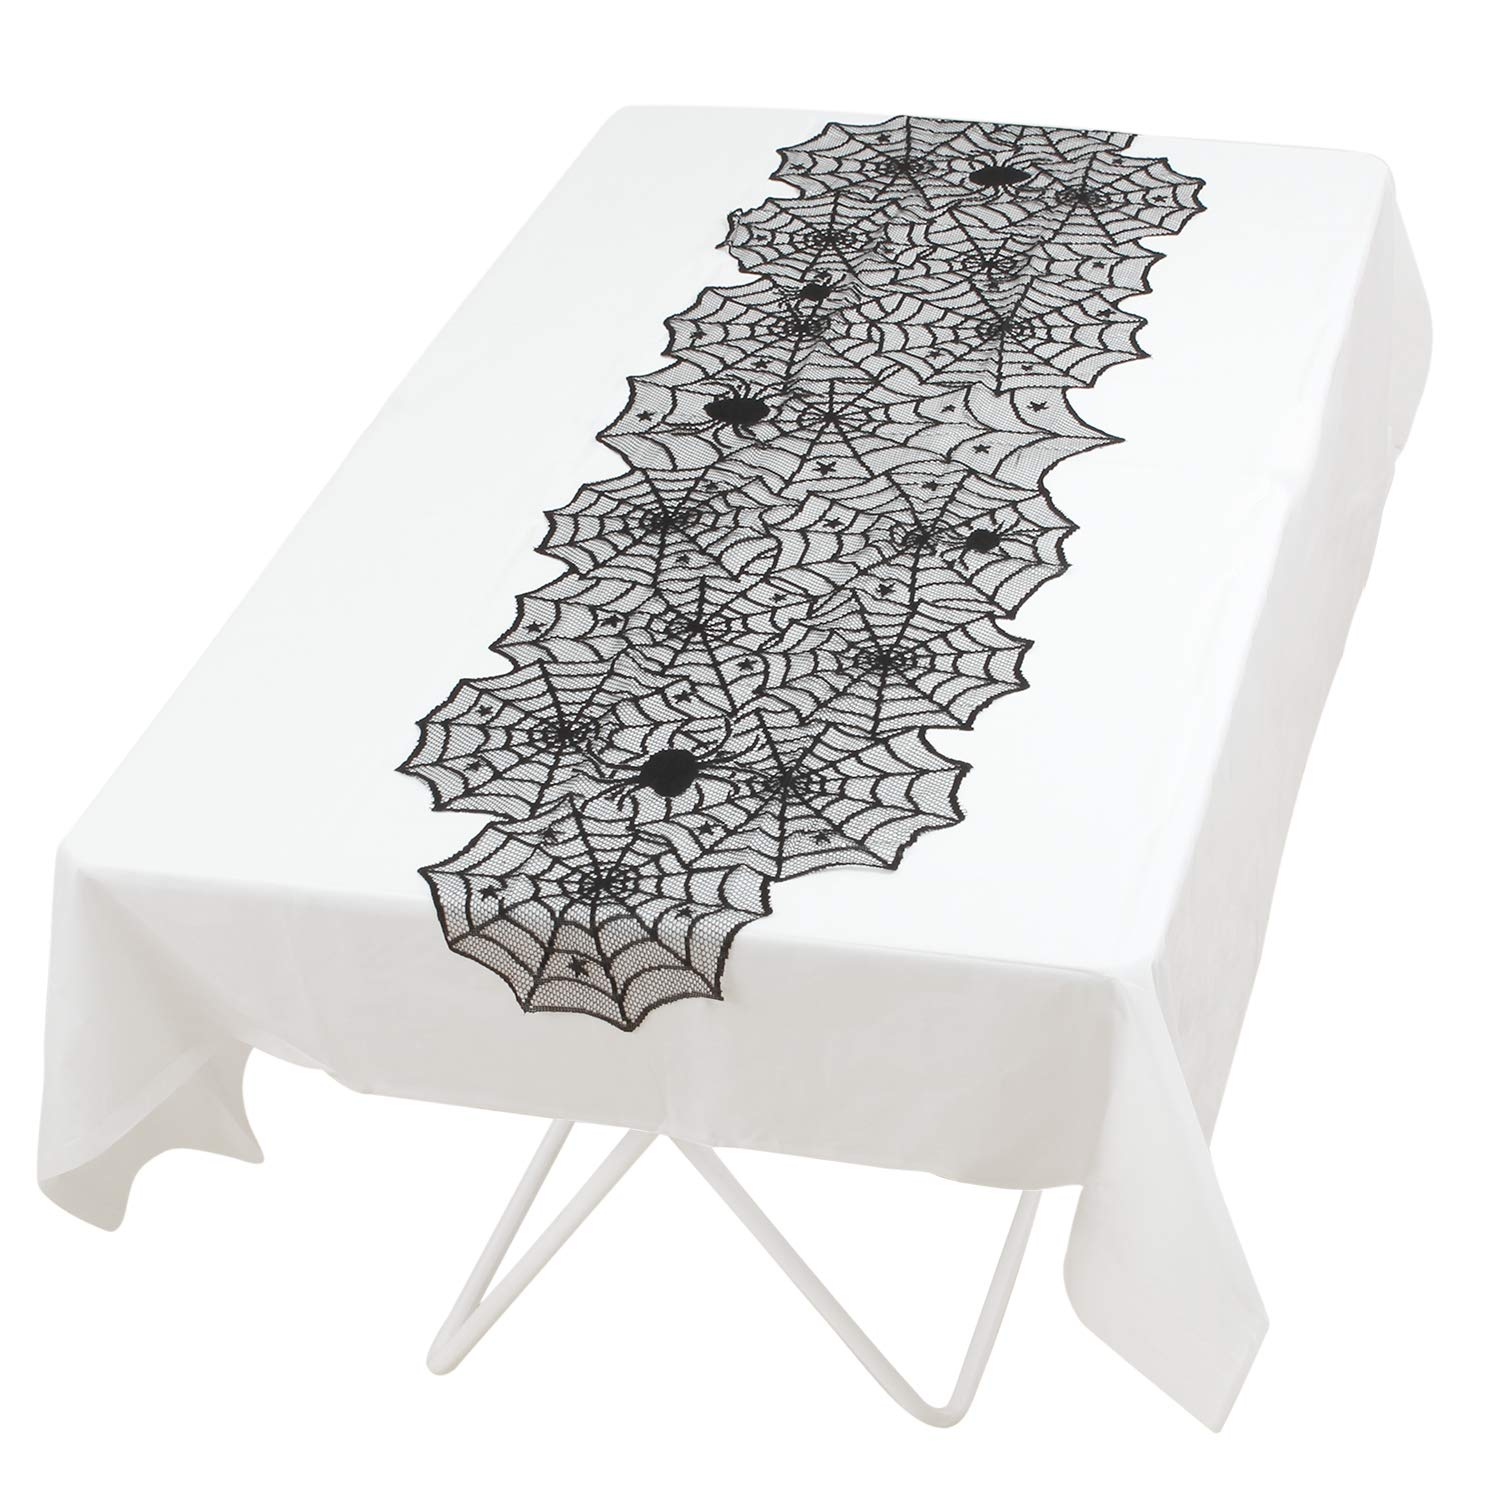 Elcoho 2 Pieces Halloween Black Spider 40 Inch Halloween Lace Table Topper Cloth for Halloween Table Decorations 1 Black Overlay 1 White Liner